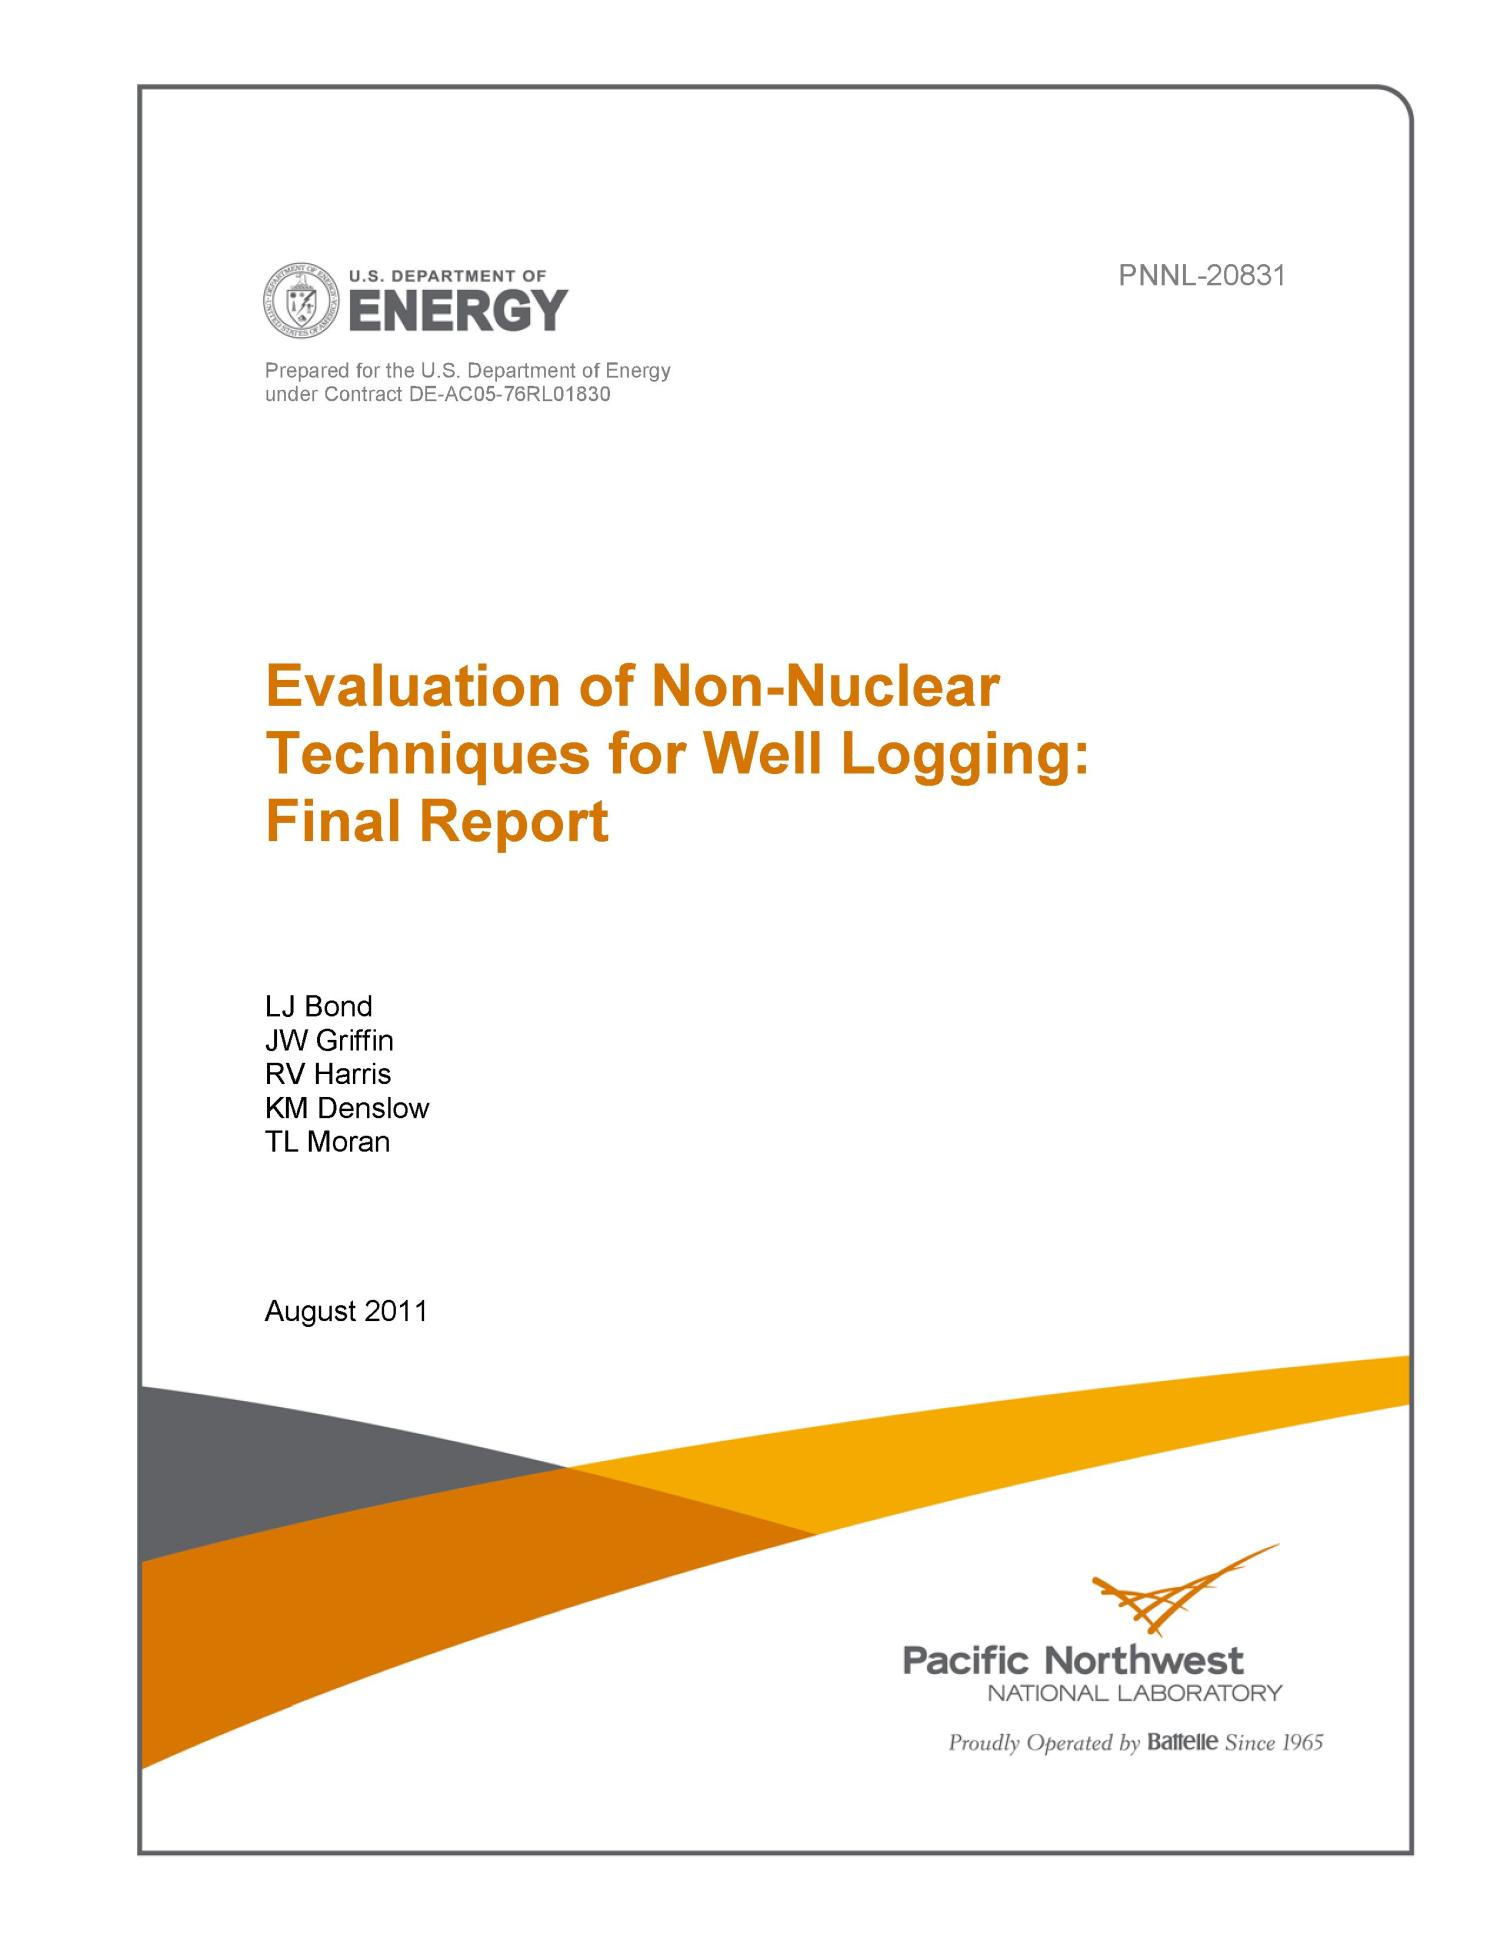 Evaluation of Non-Nuclear Techniques for Well Logging: Final Report                                                                                                      [Sequence #]: 1 of 38